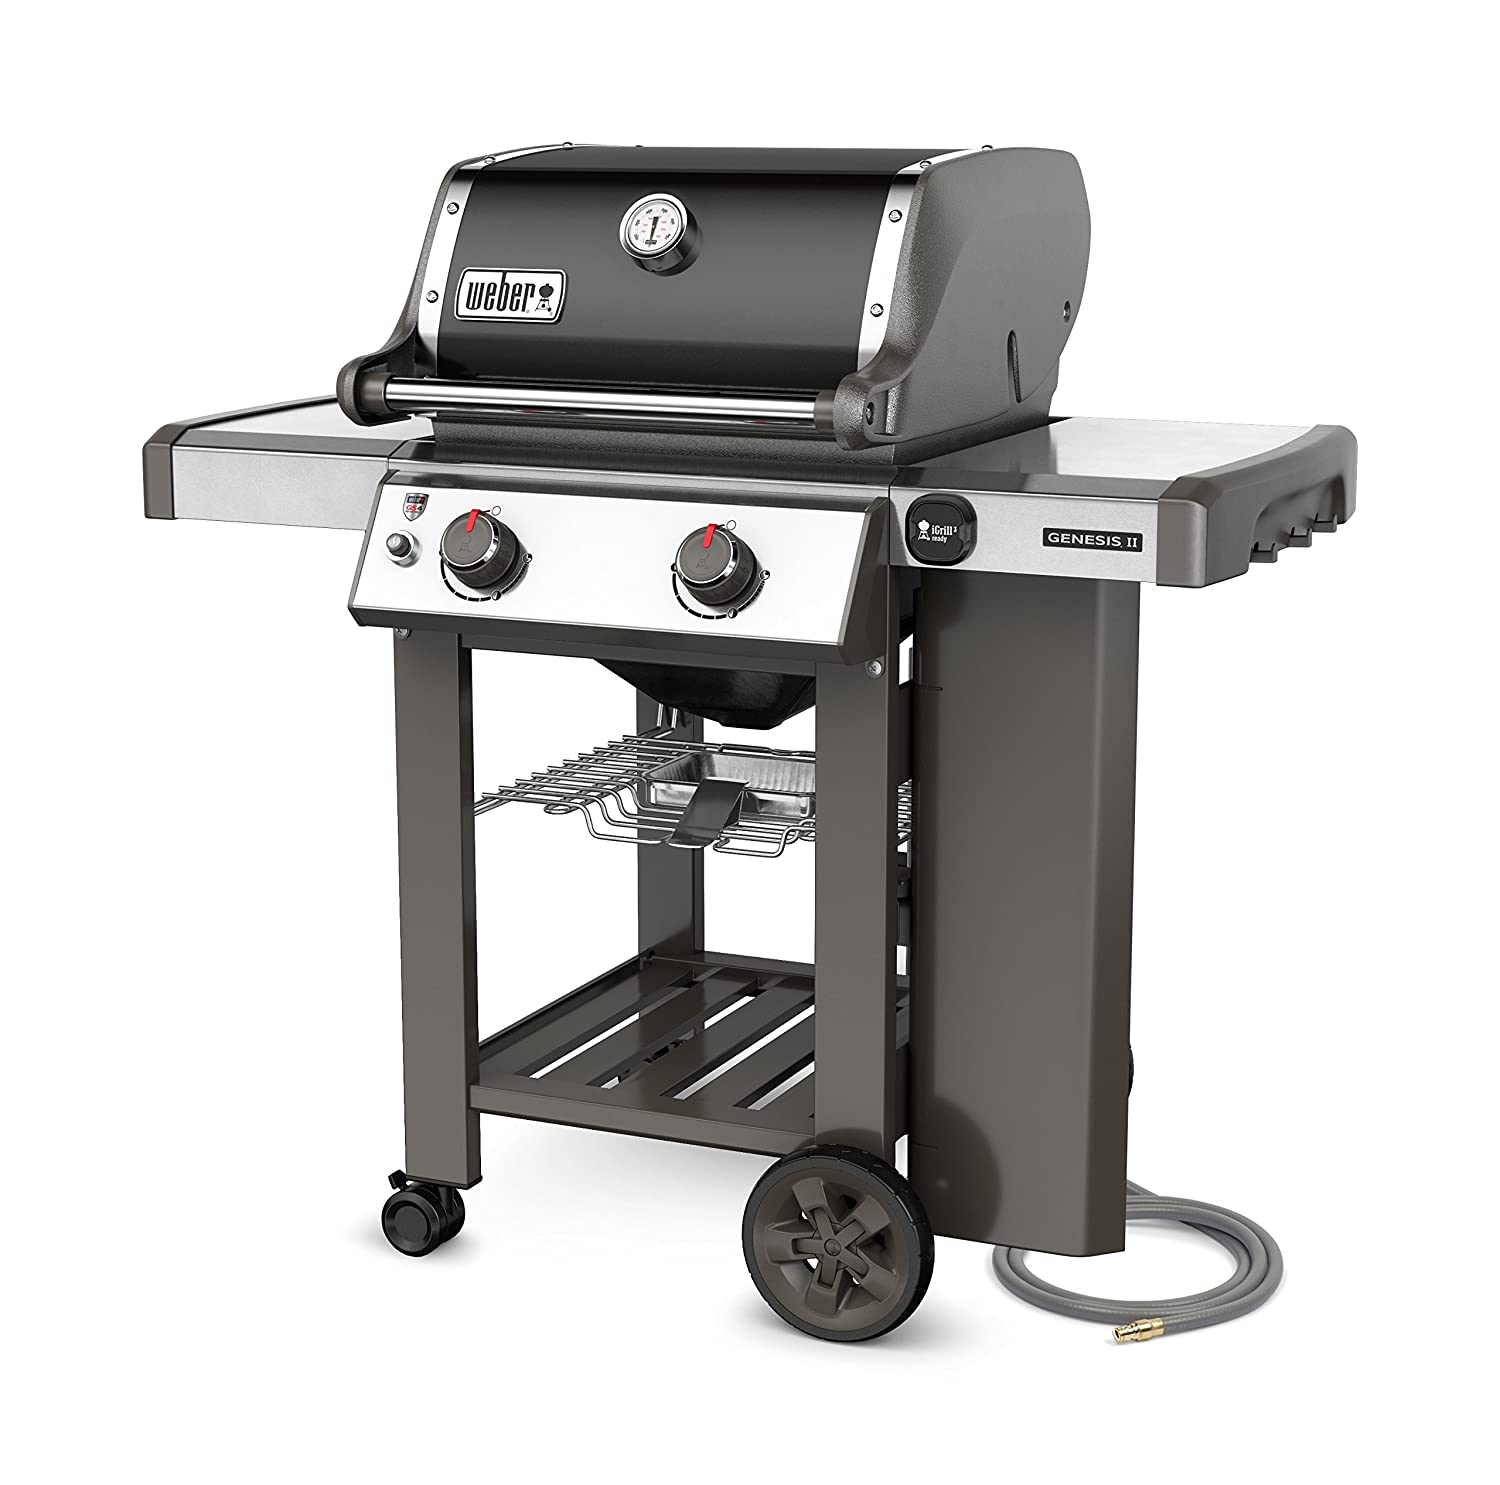 Weber-Stephen Products 65010001 Genesis II E-210 Natural Gas Grill, Black, Two-Burner